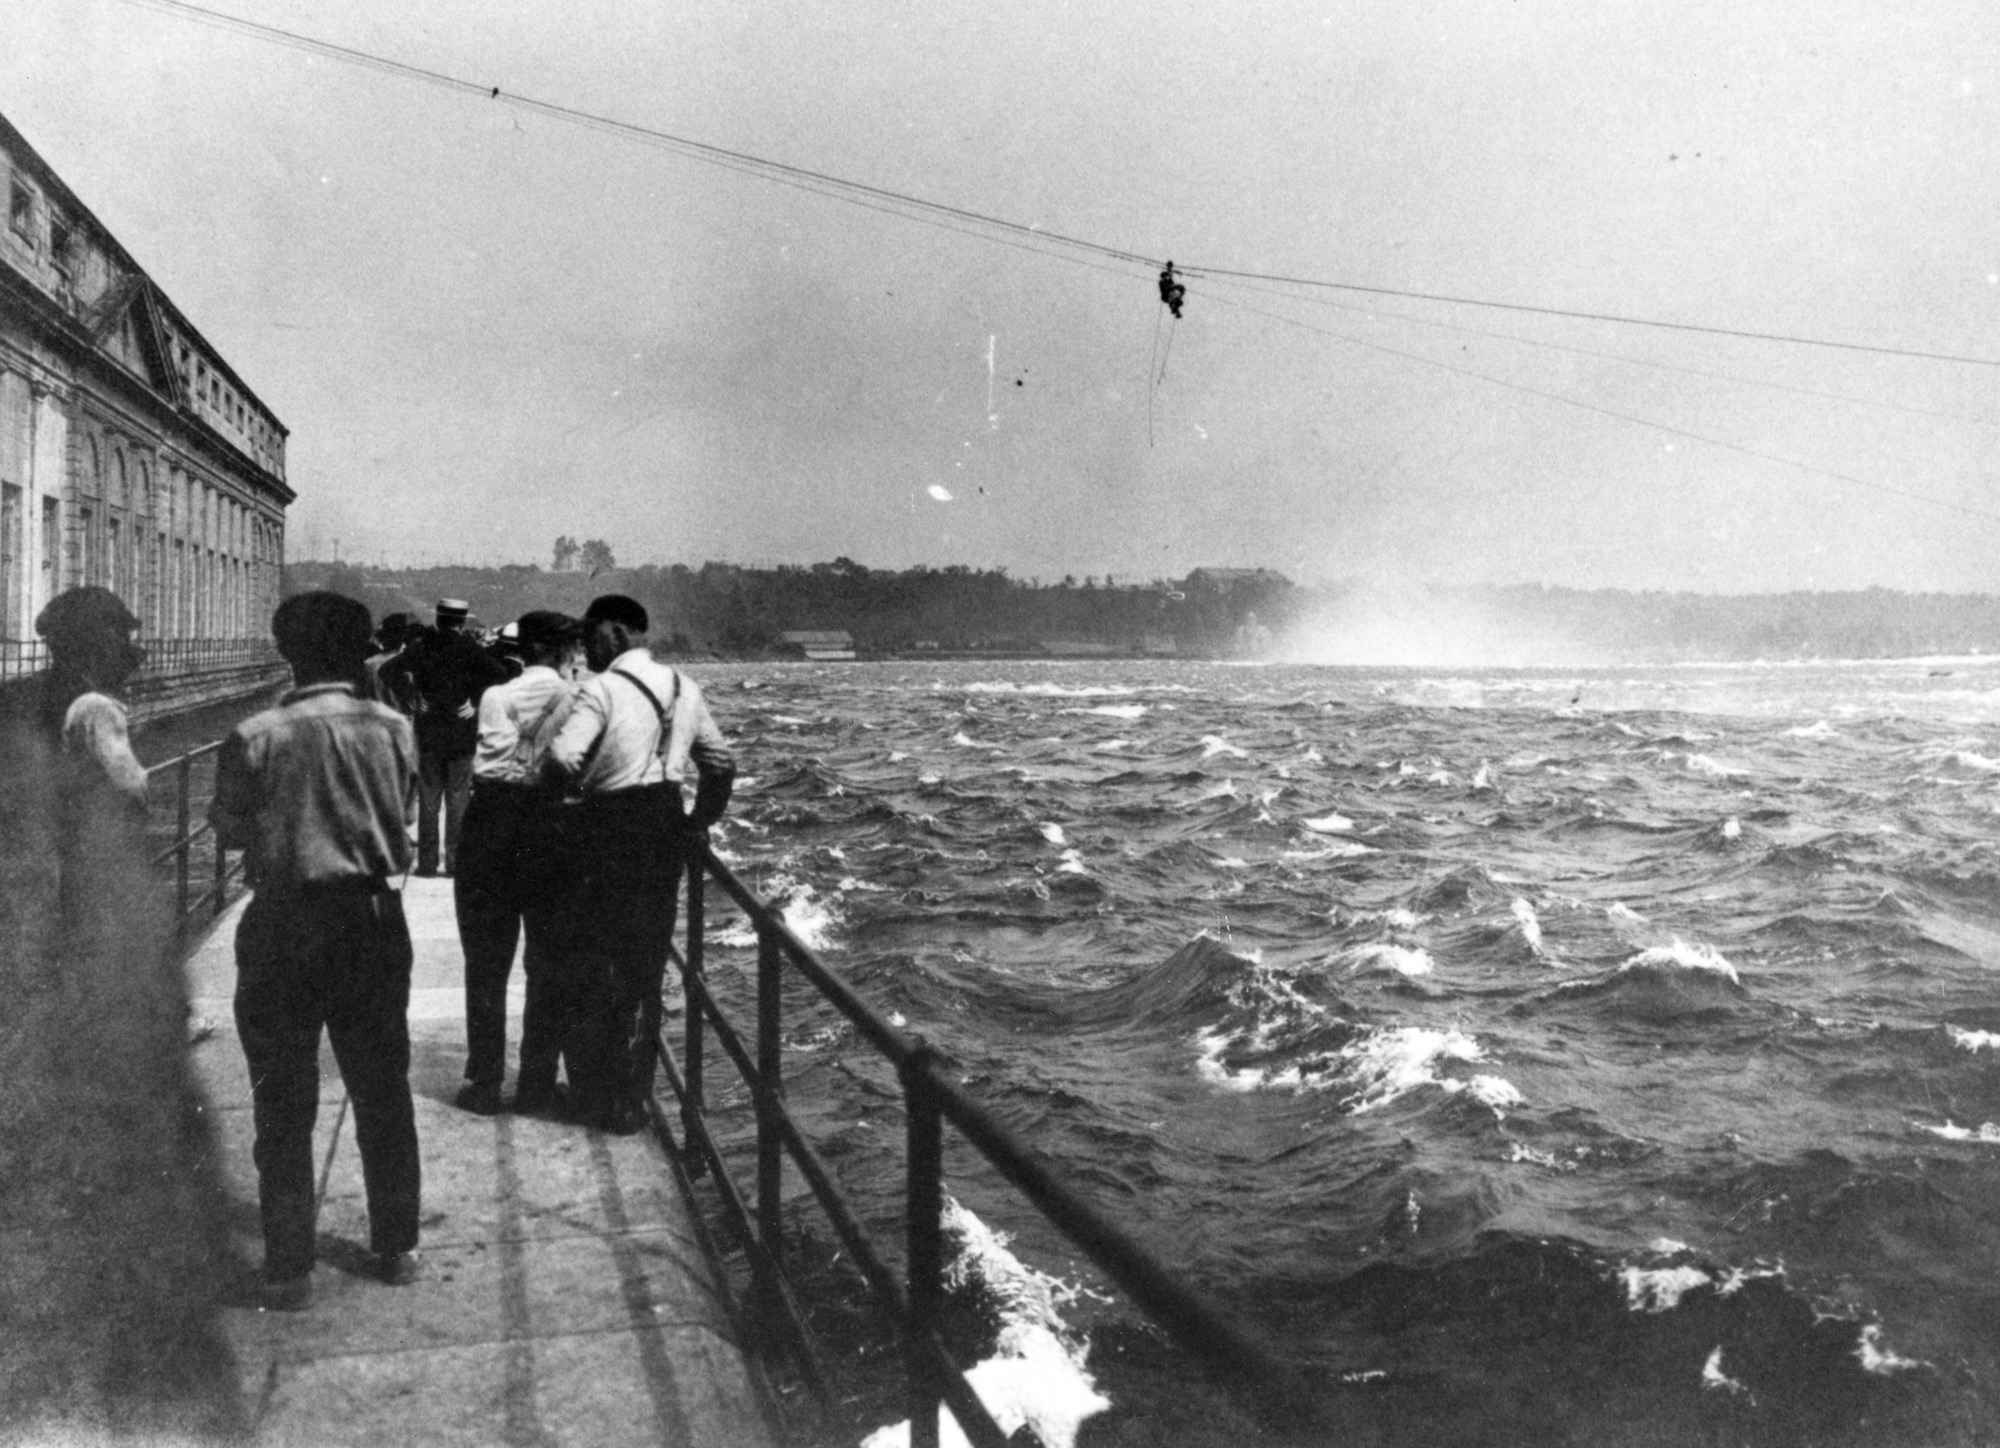 Spectators watching a dramatic rescue